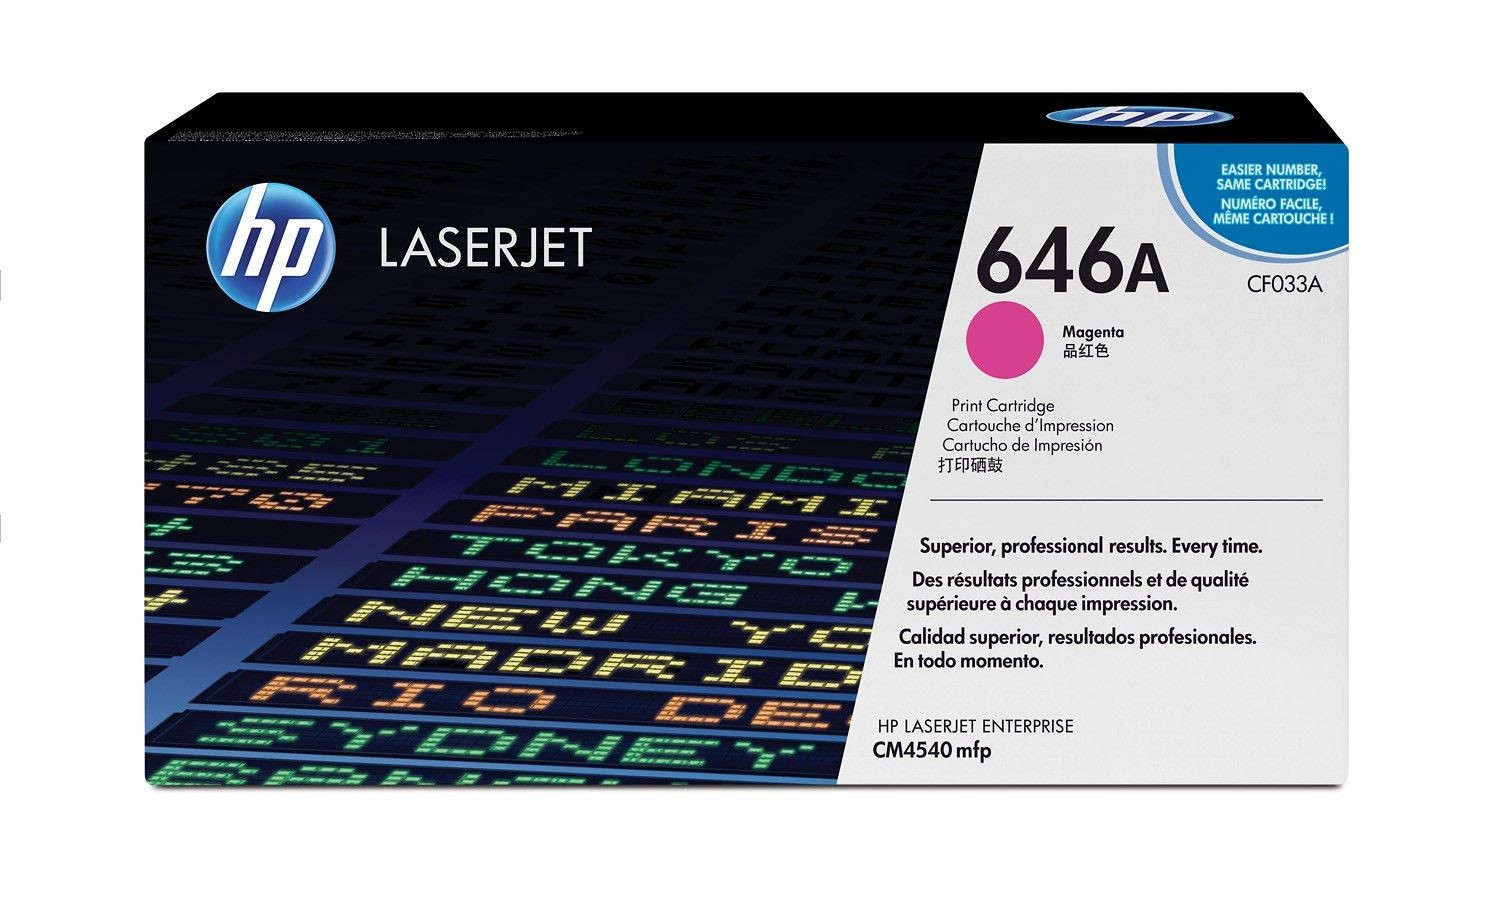 HP Color LaserJet CF033A Magenta Print Cartridge